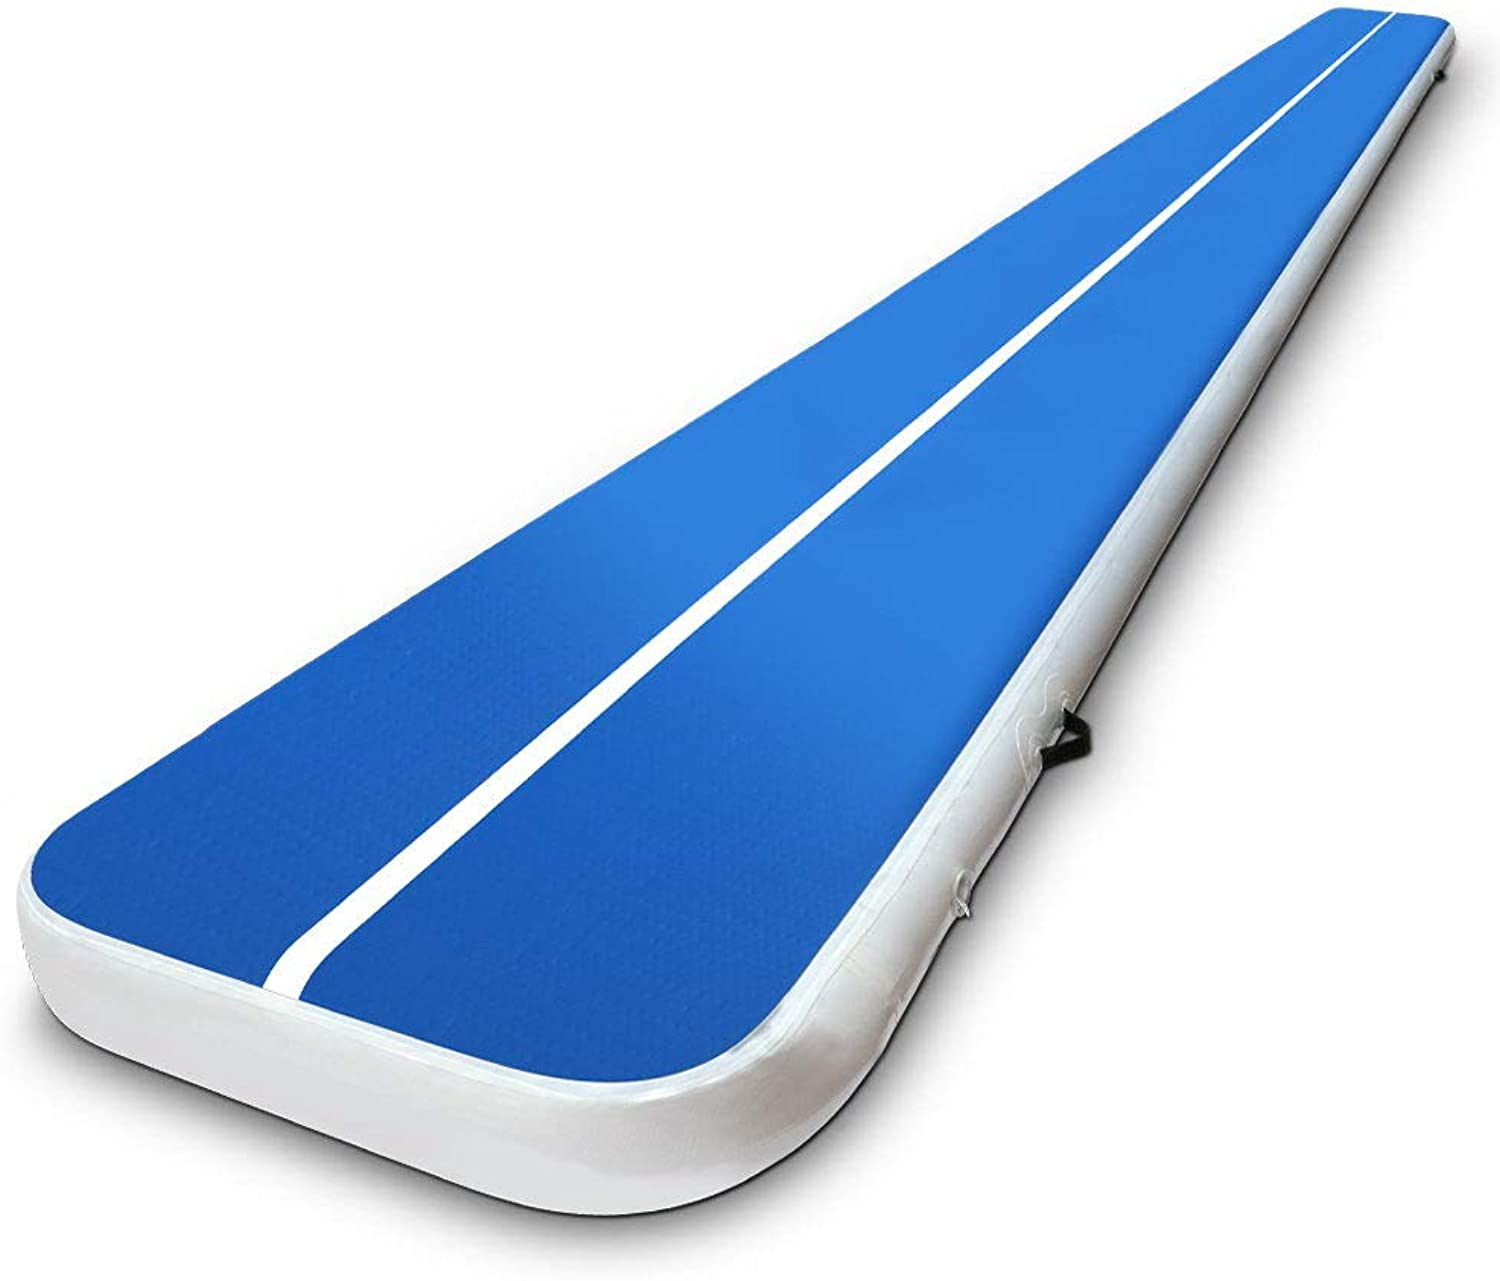 Air Track Gymnastics Inflatable Airtrack Mat 7M X 1M Tumble Floor Gymnastic Training Cheerleading Yoga Gym Professional Equipment Everfit Home Indoor Outdoor blueee 20CM Thick